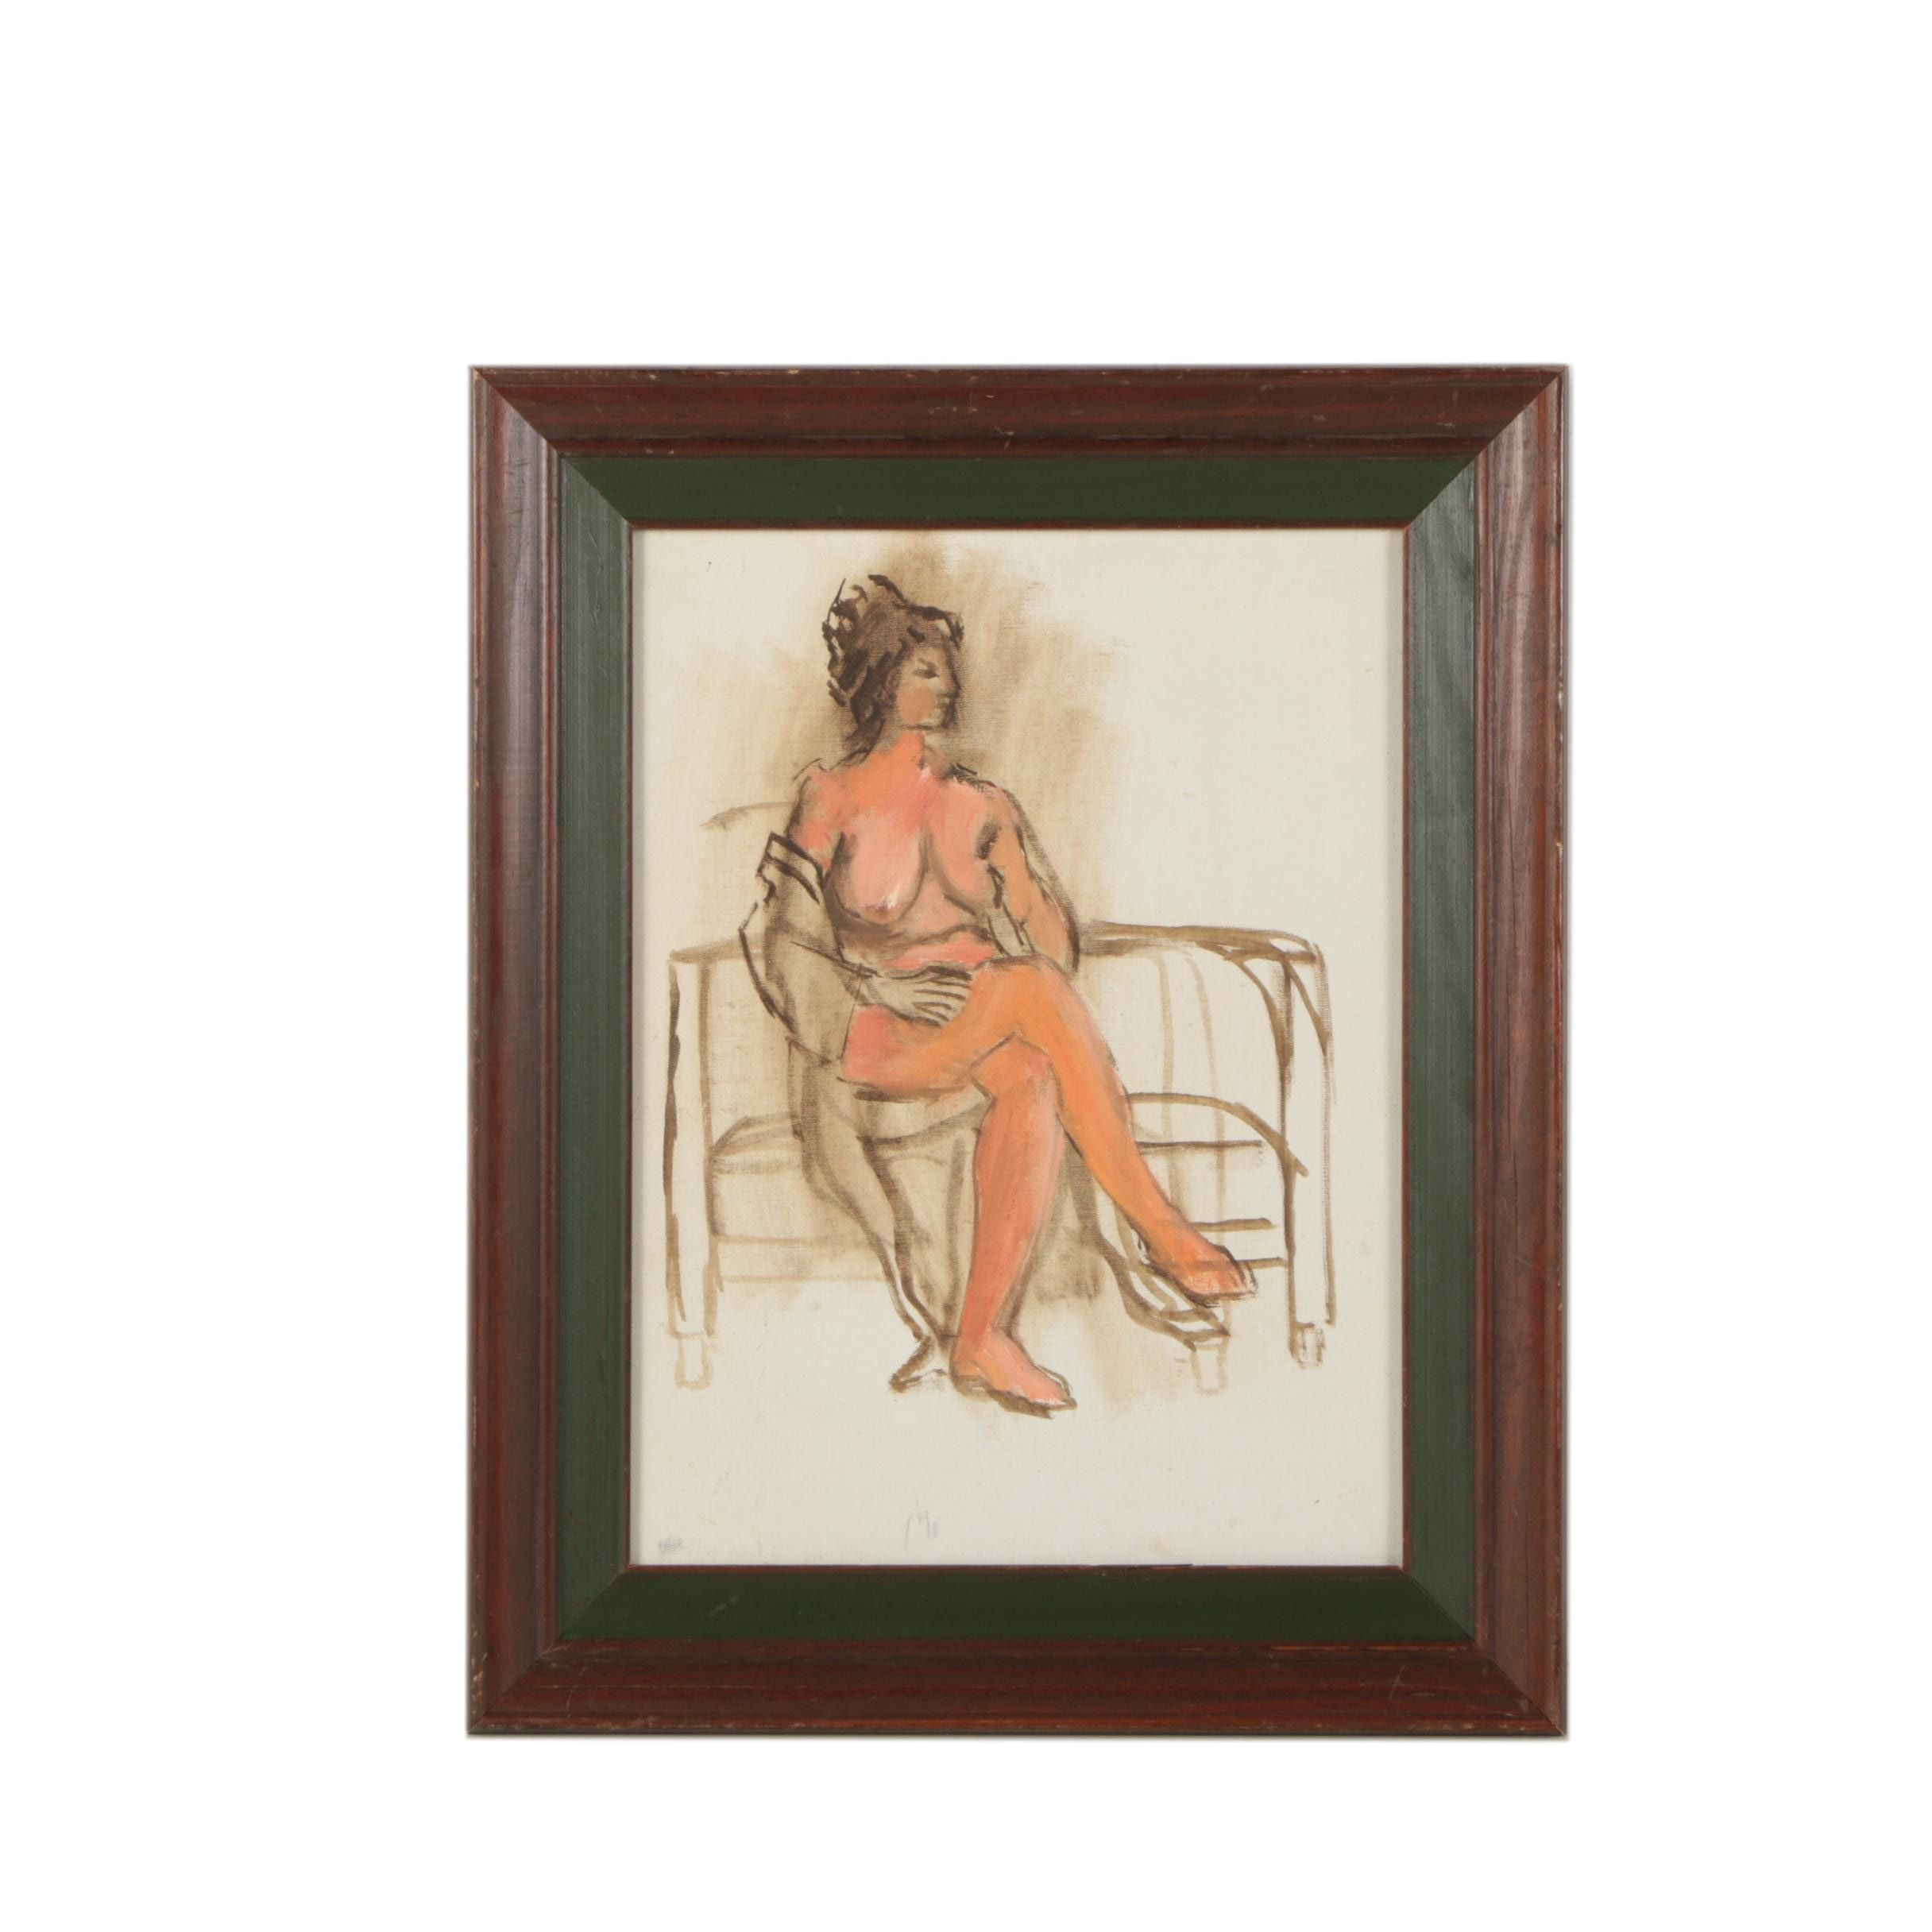 Oil Portrait Painting of a Nude Woman